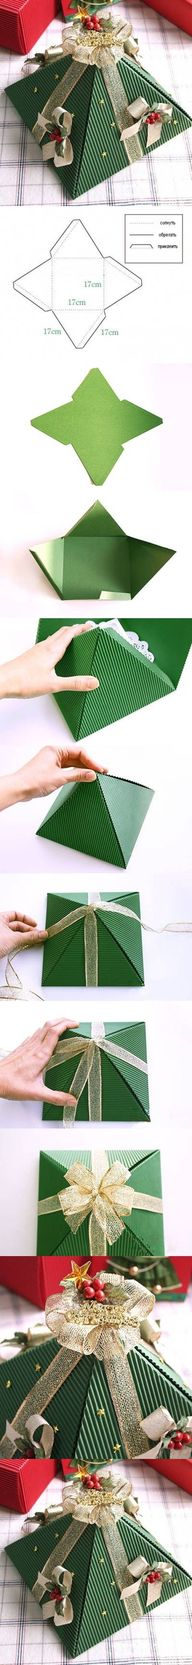 DIY Pyramid Christma